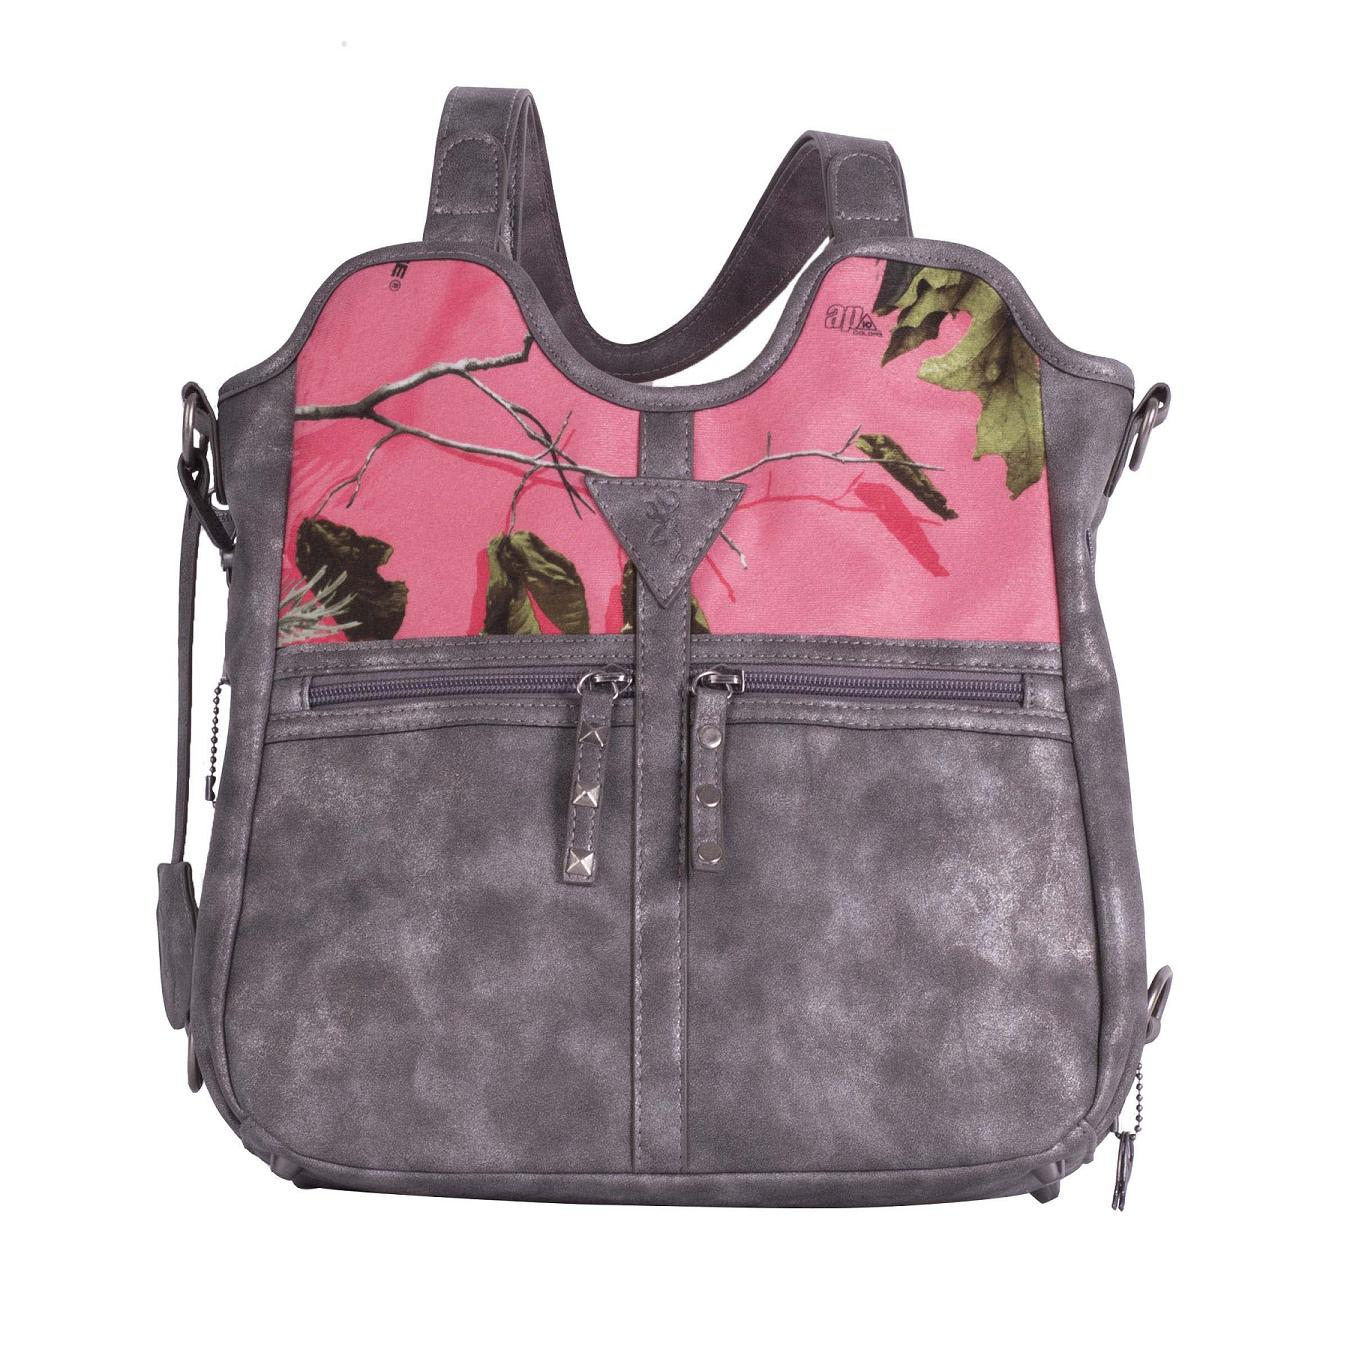 Browning Concealed Carry Realtree Gun Purse Carson